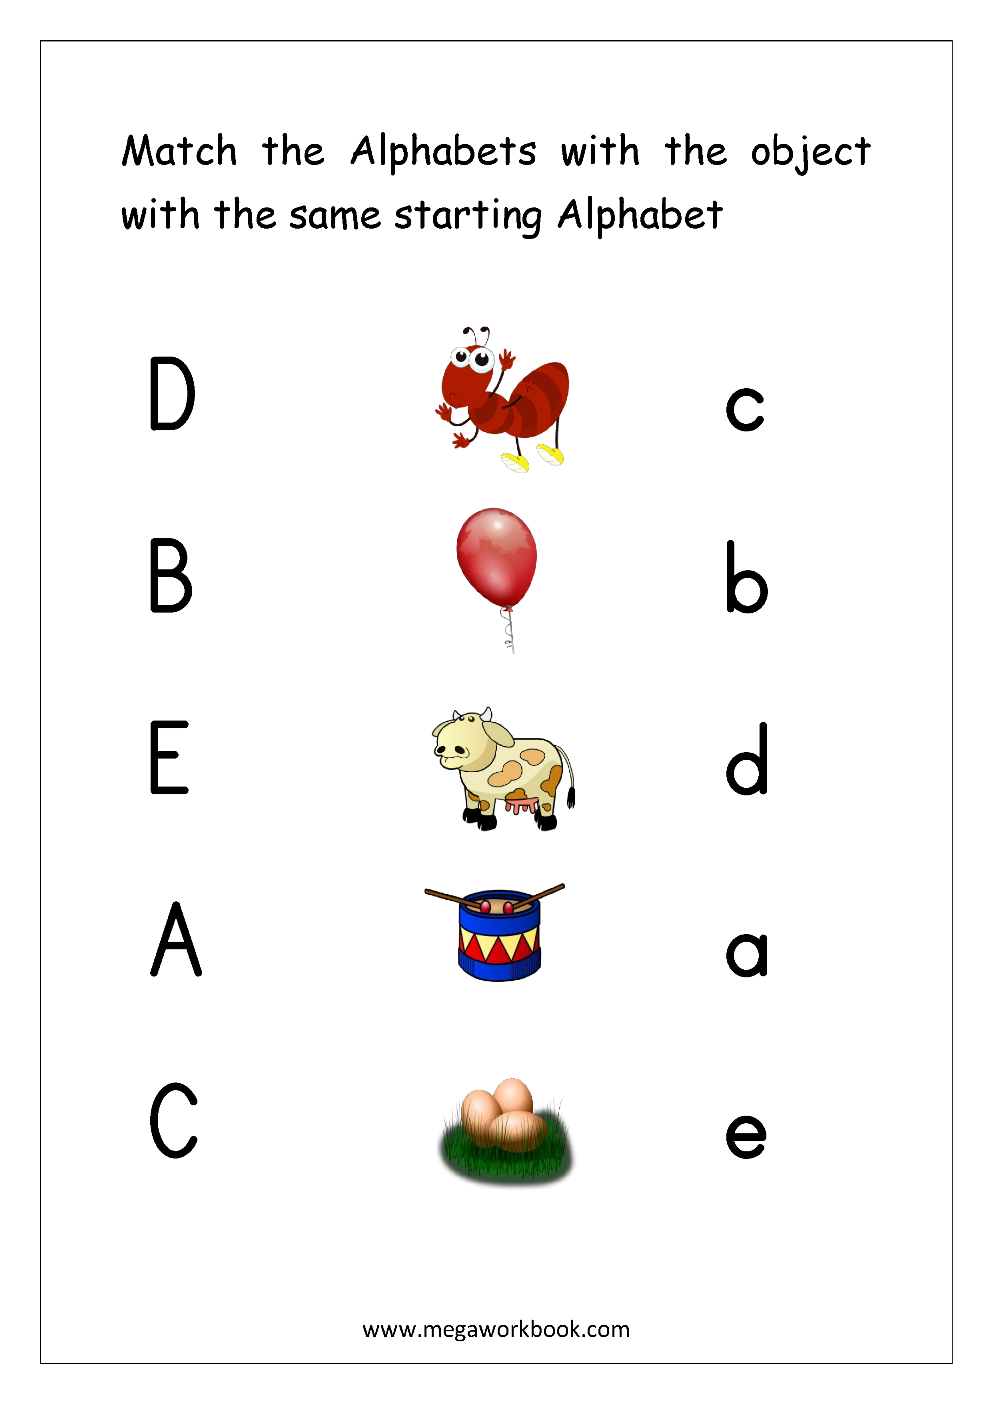 Alphabets Worksheets - Match Upper Case And Lower Case Letters 9 ...